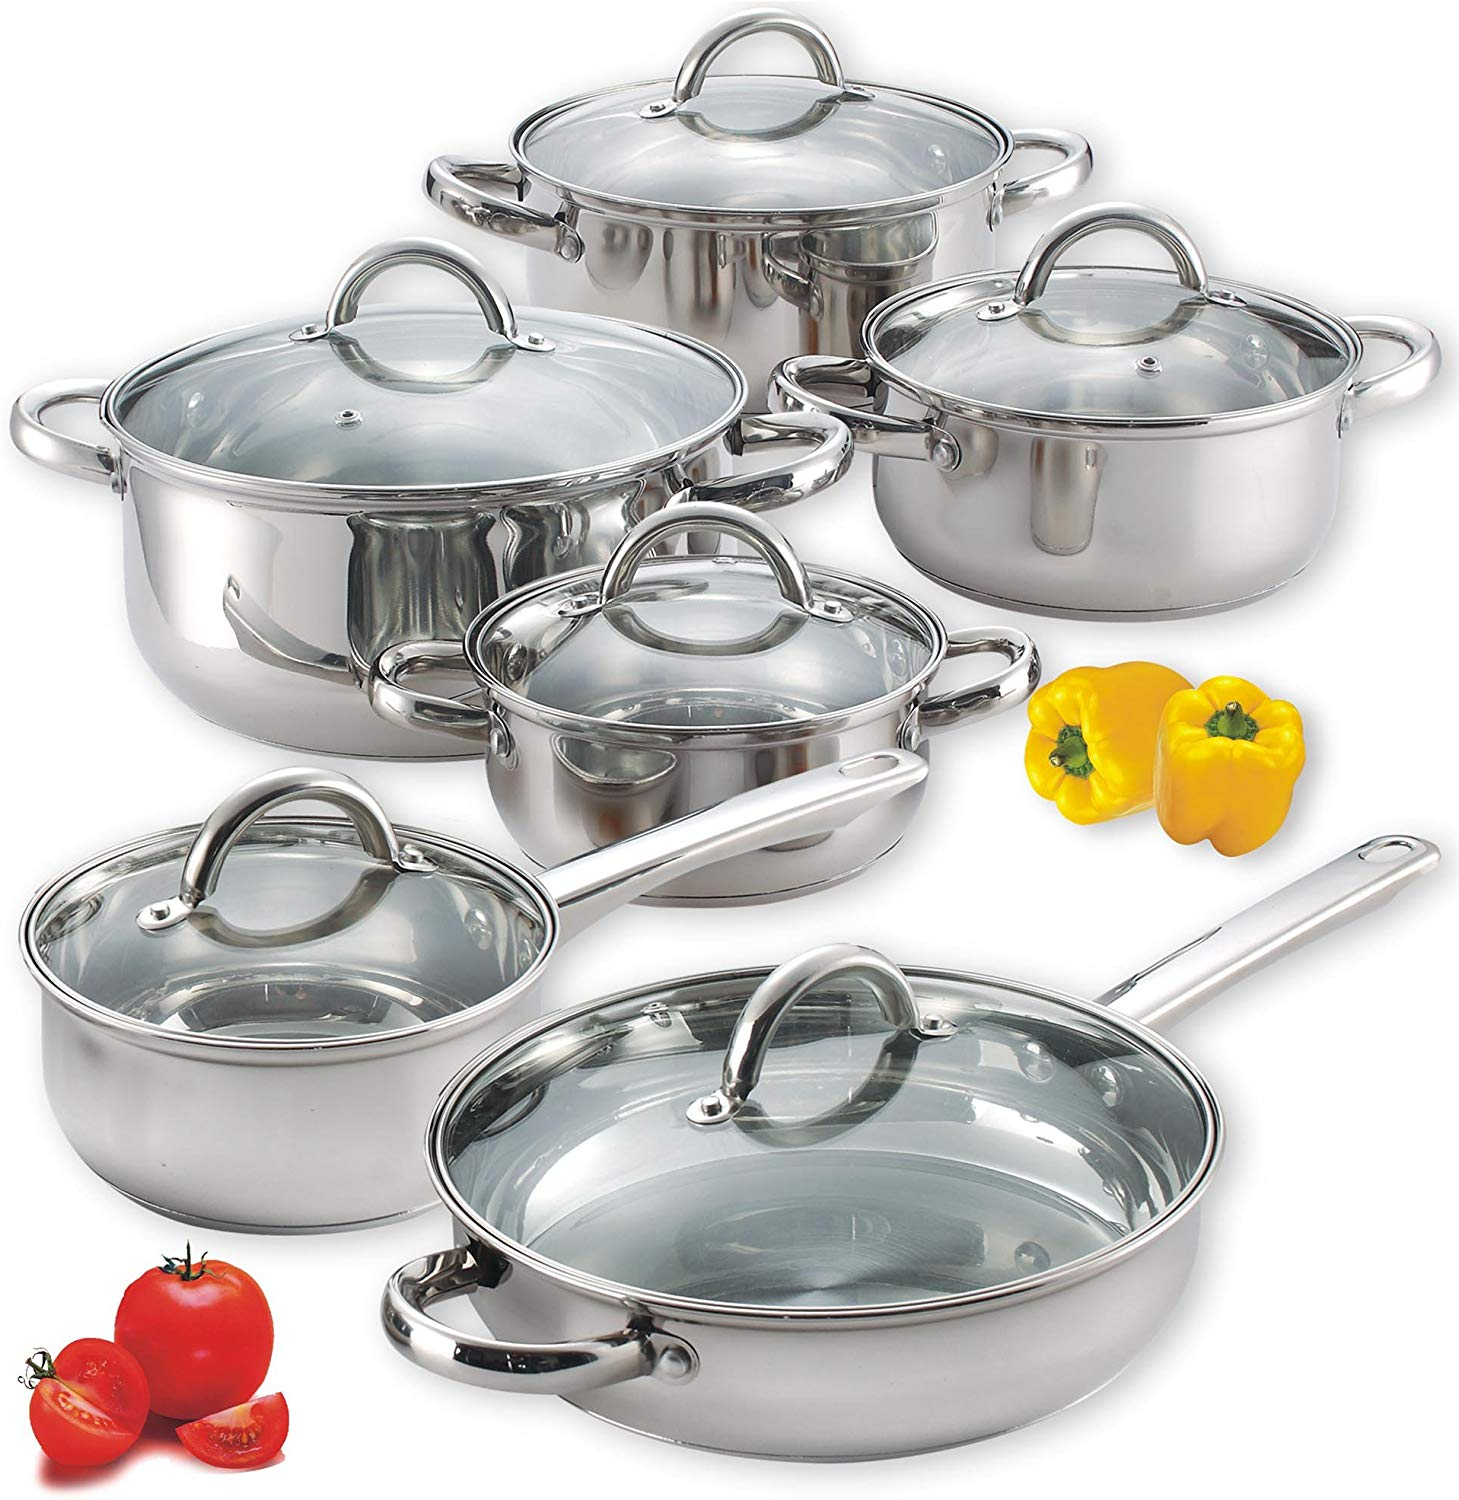 Cook N Home NC-00250 Cookware Set, 12-Piece